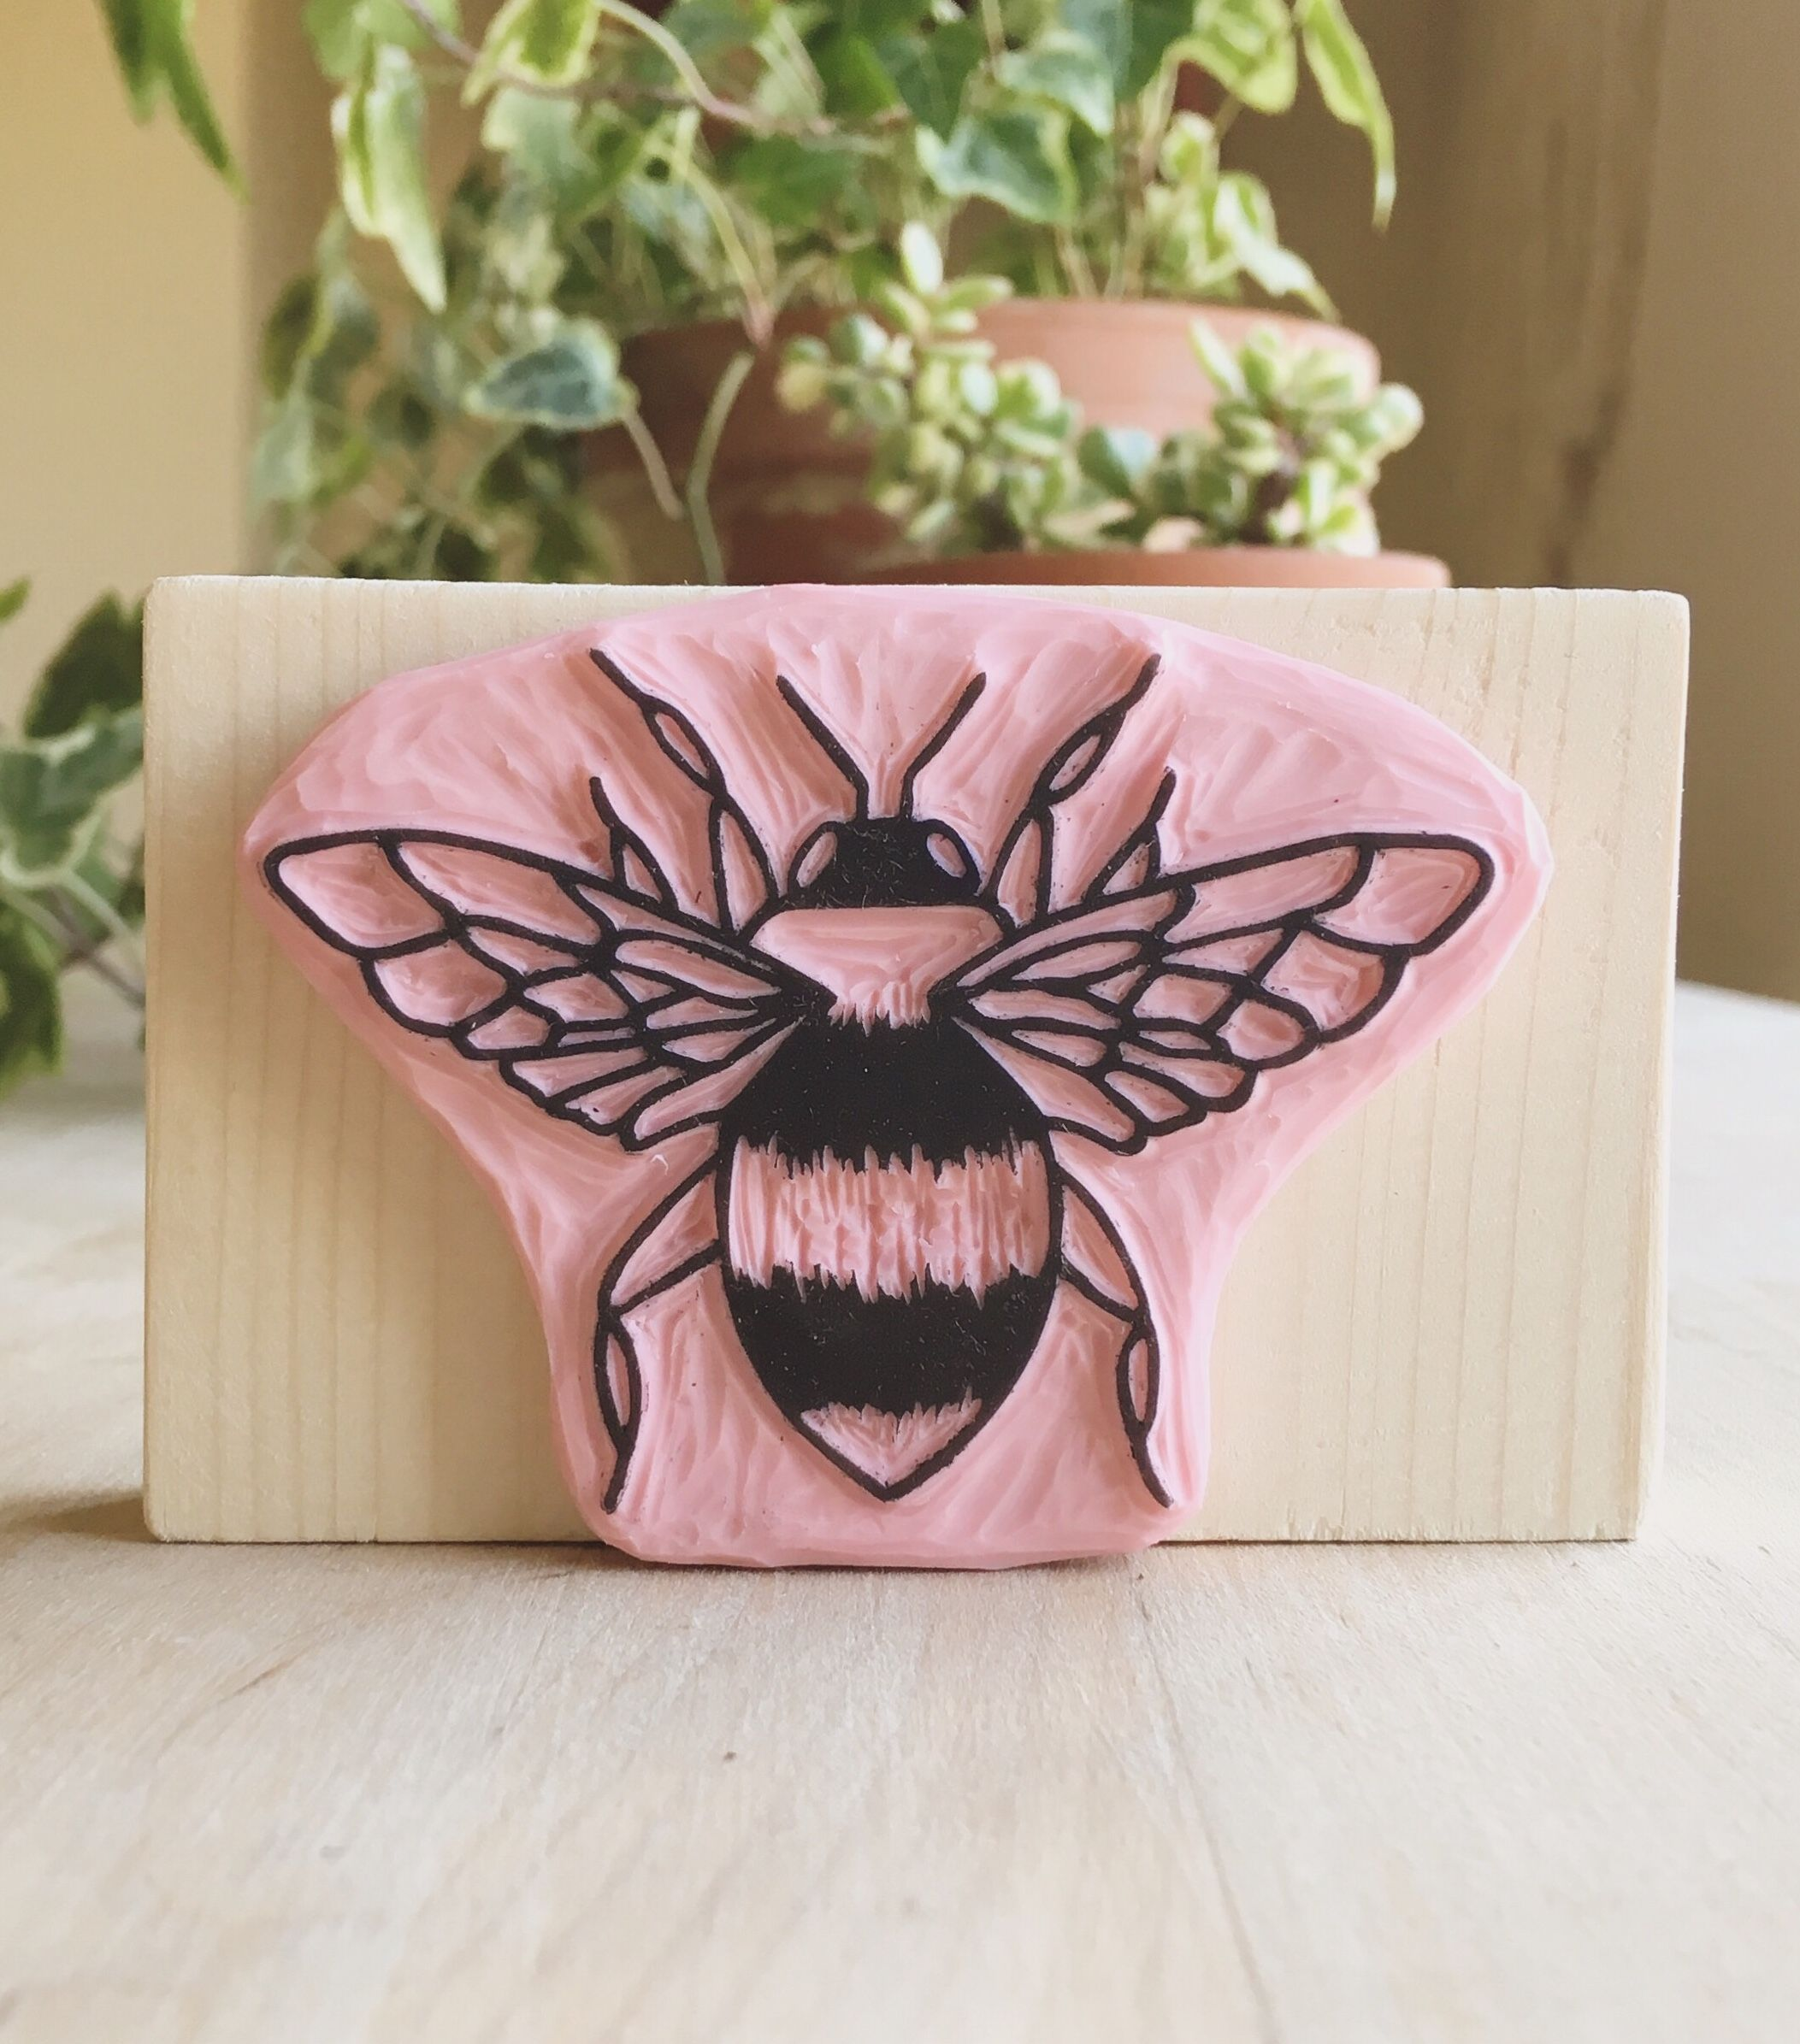 Hand-Carved Bee Stamp // Delightfully Chaotic Co. #rubberstamping